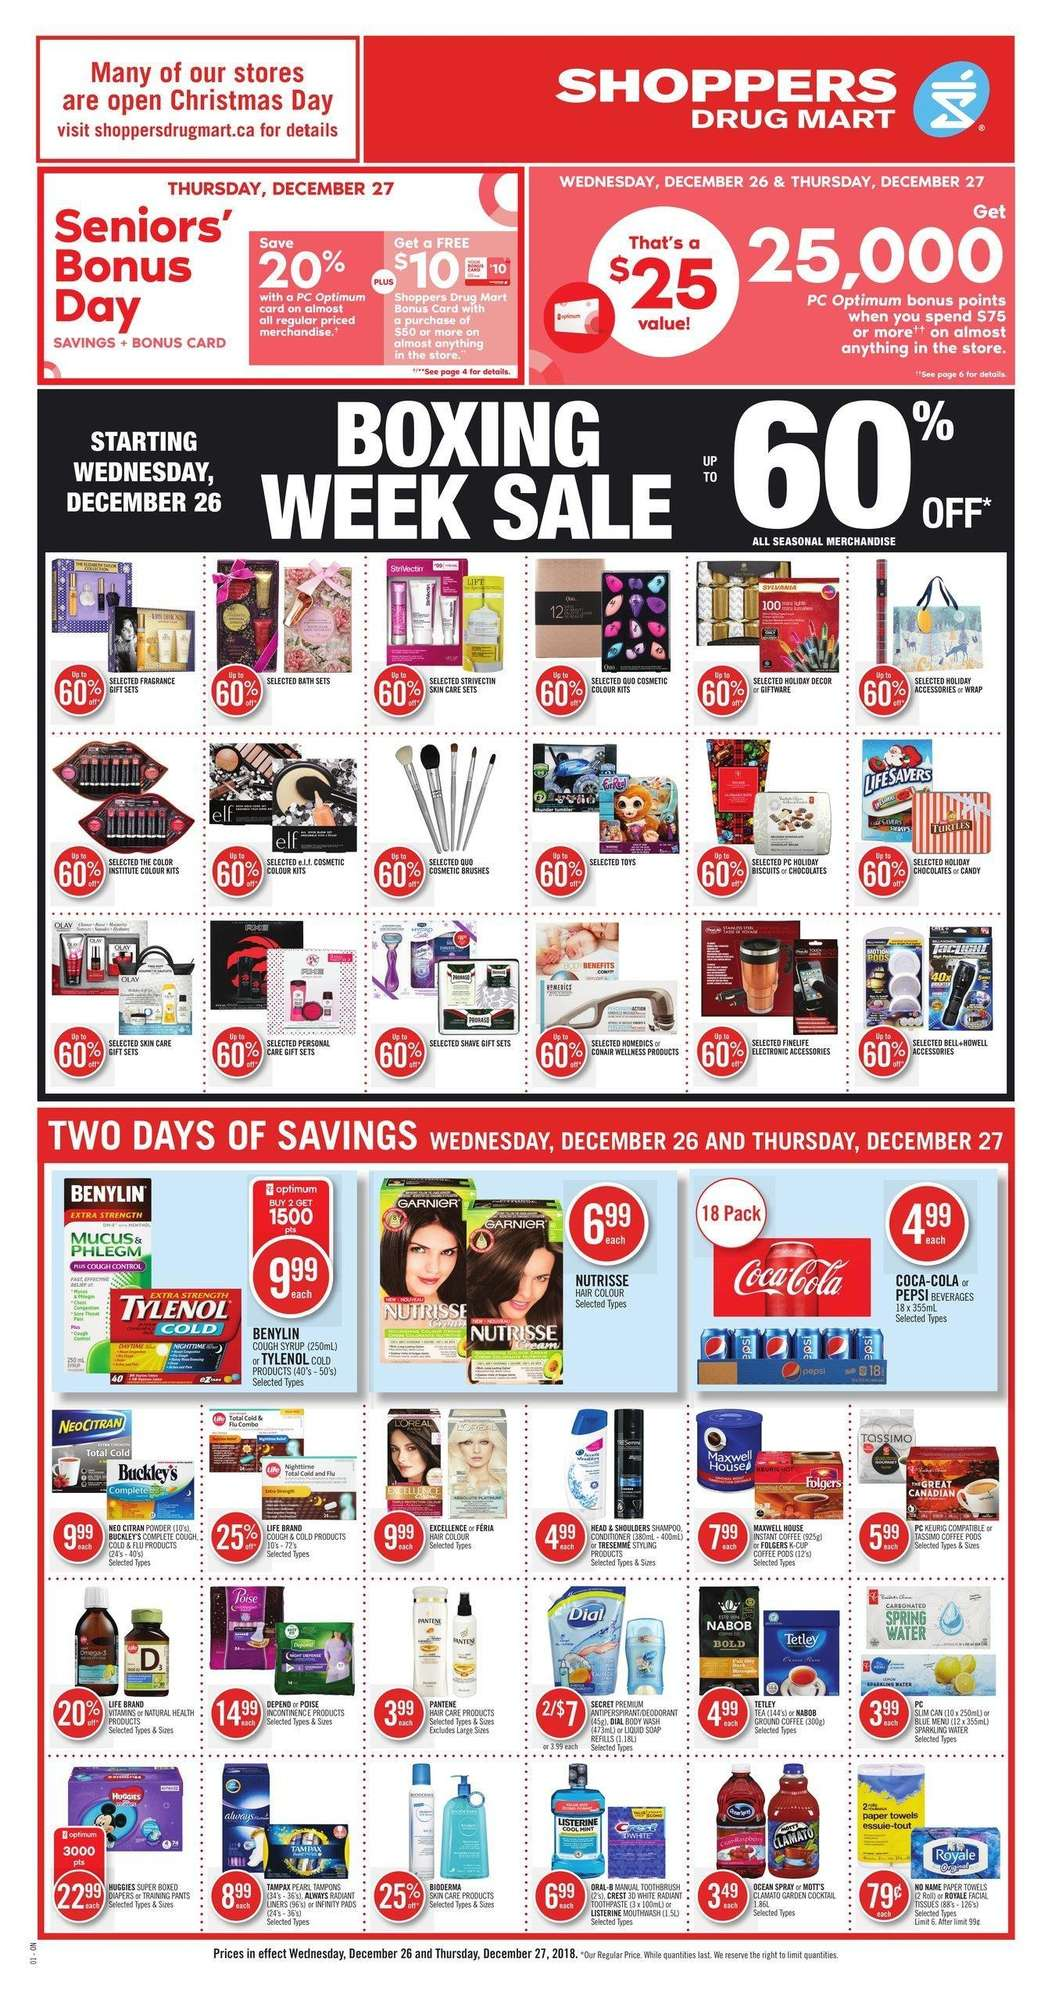 Shoppers Drug Mart Boxing Day 2018 Sale Flyer